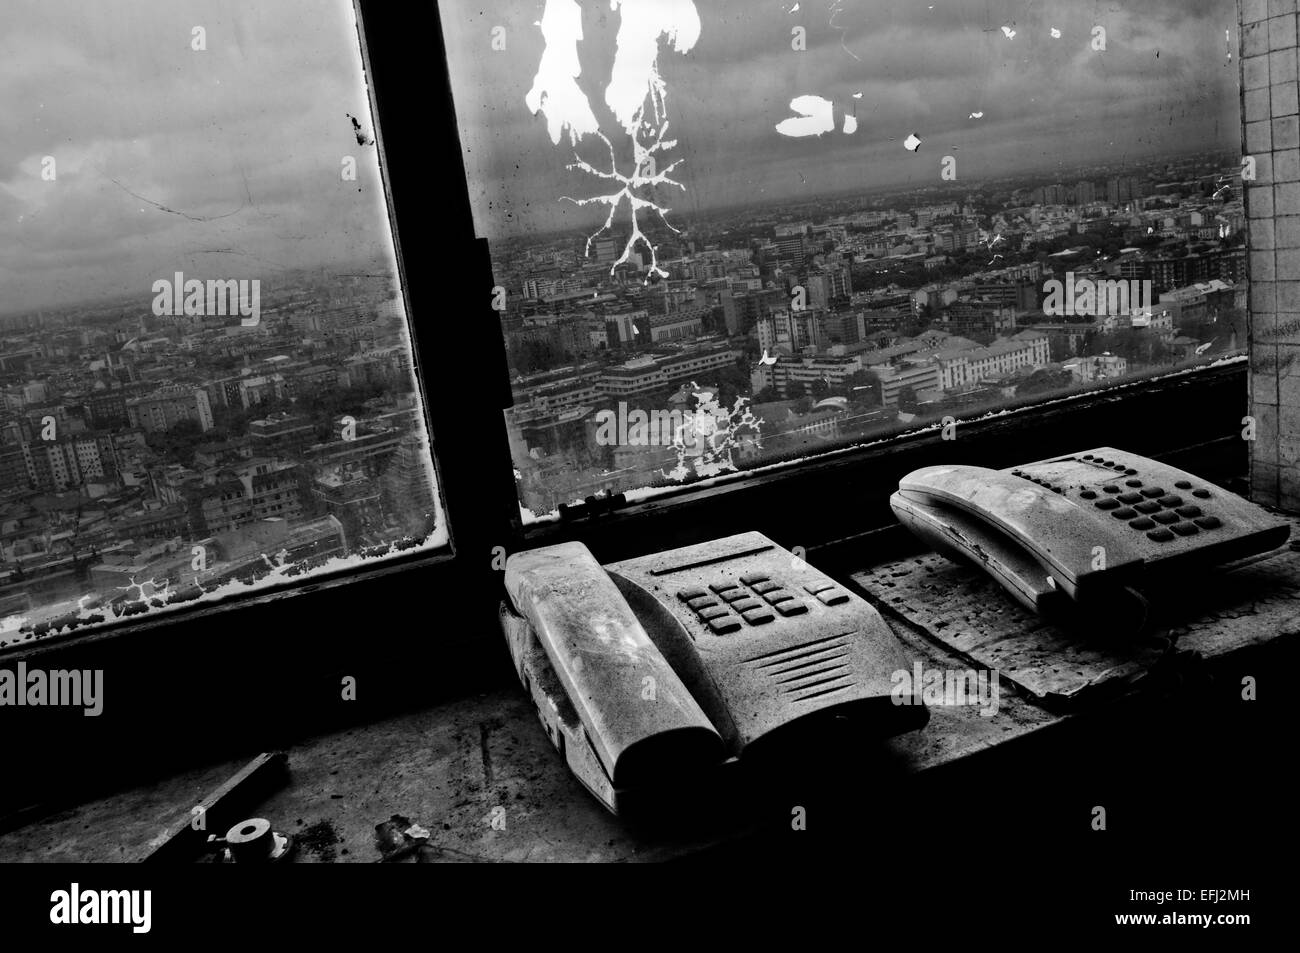 Abandoned skyscraper windows - Stock Image